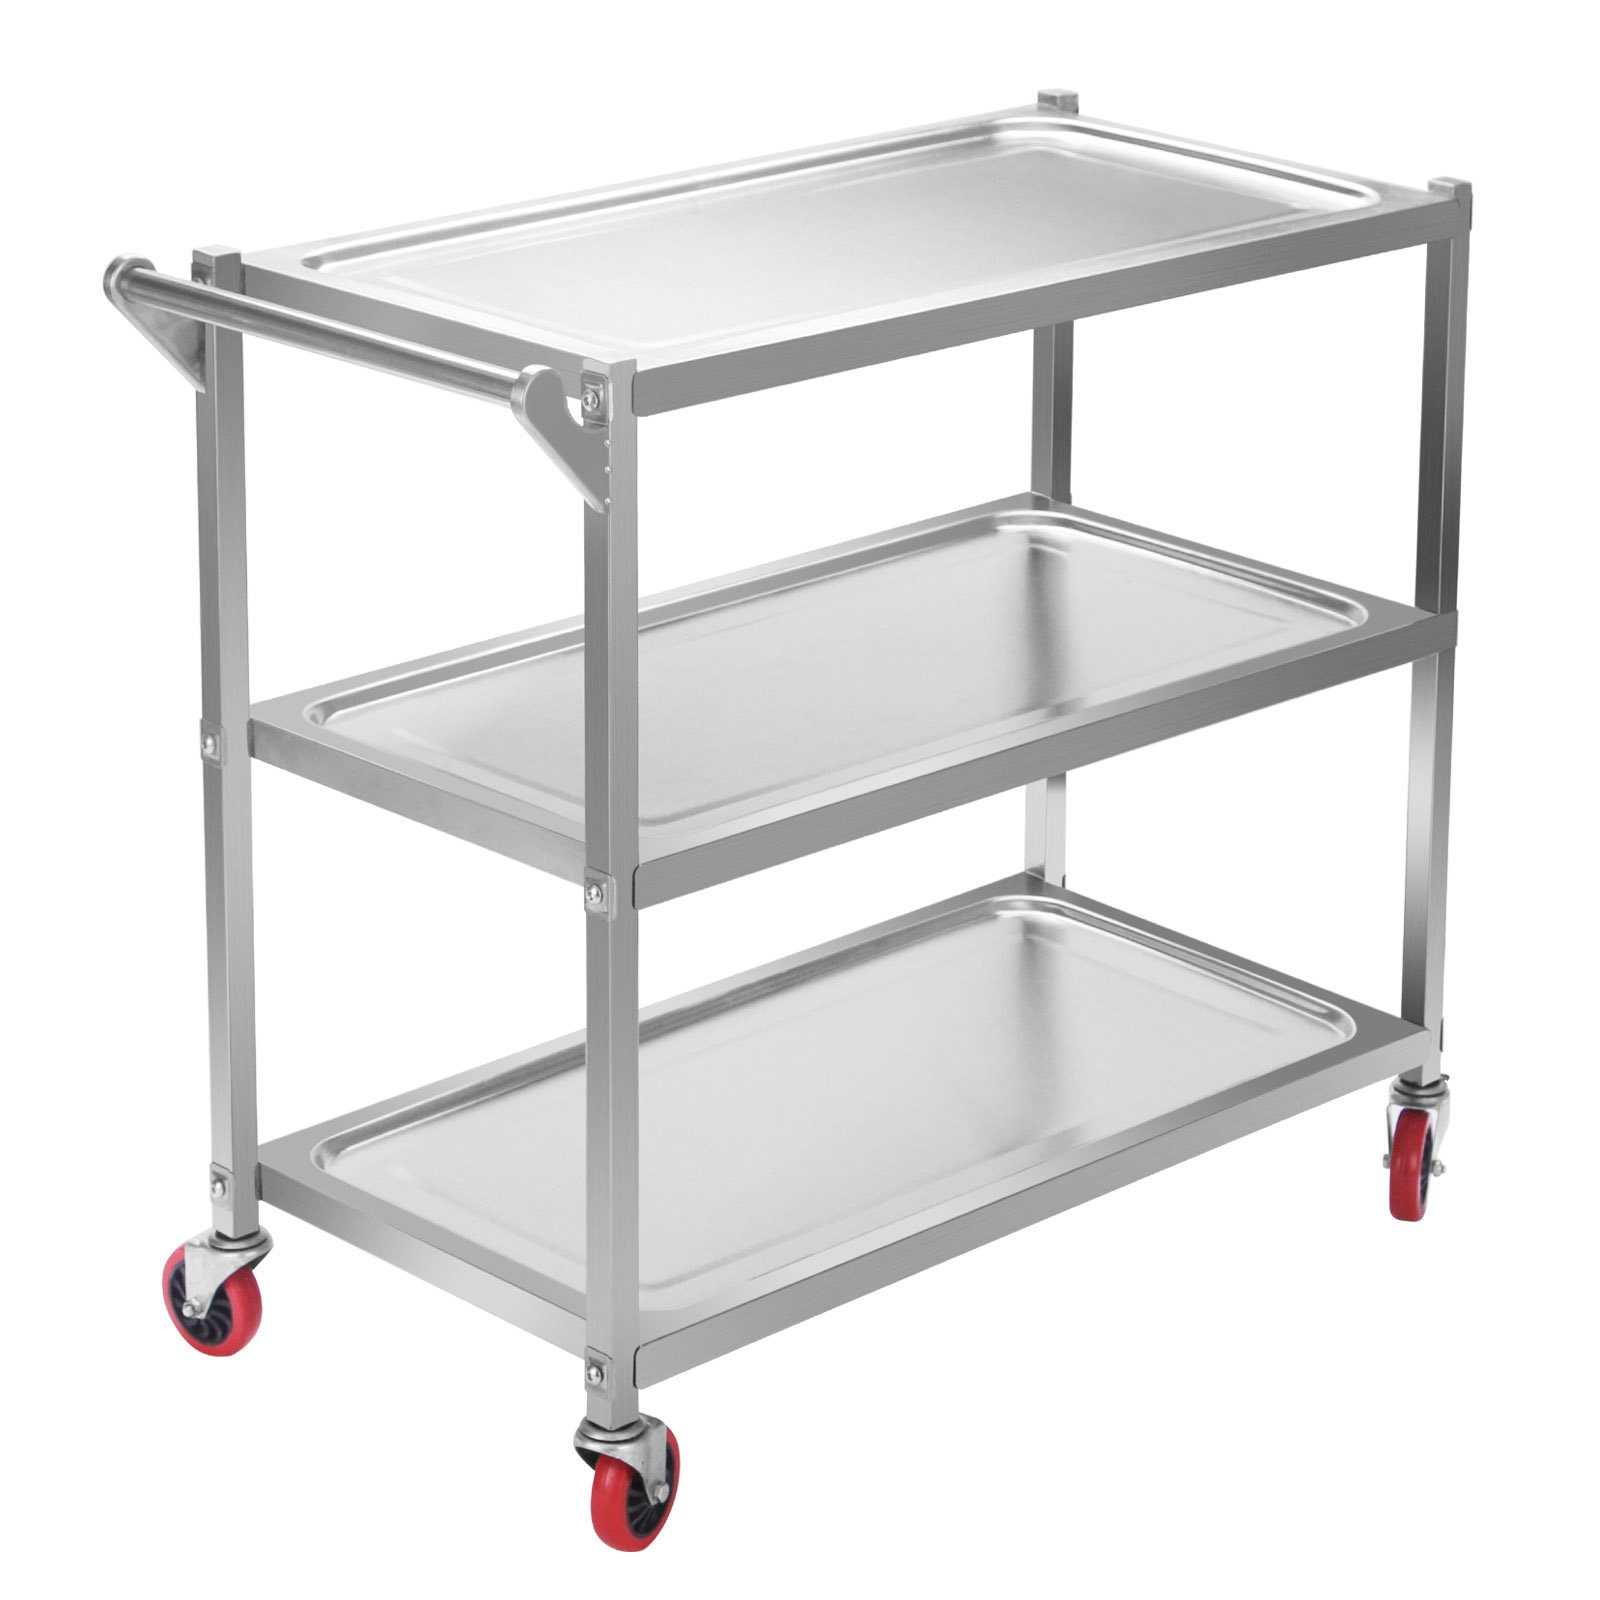 Happybuy Utility Cart 3 Shelf Utility Cart on Wheels 330Lbs Stainless Steel Cart Commercial Bus Cart Kitchen Food Catering Rolling Dolly (3 shelf with handle)